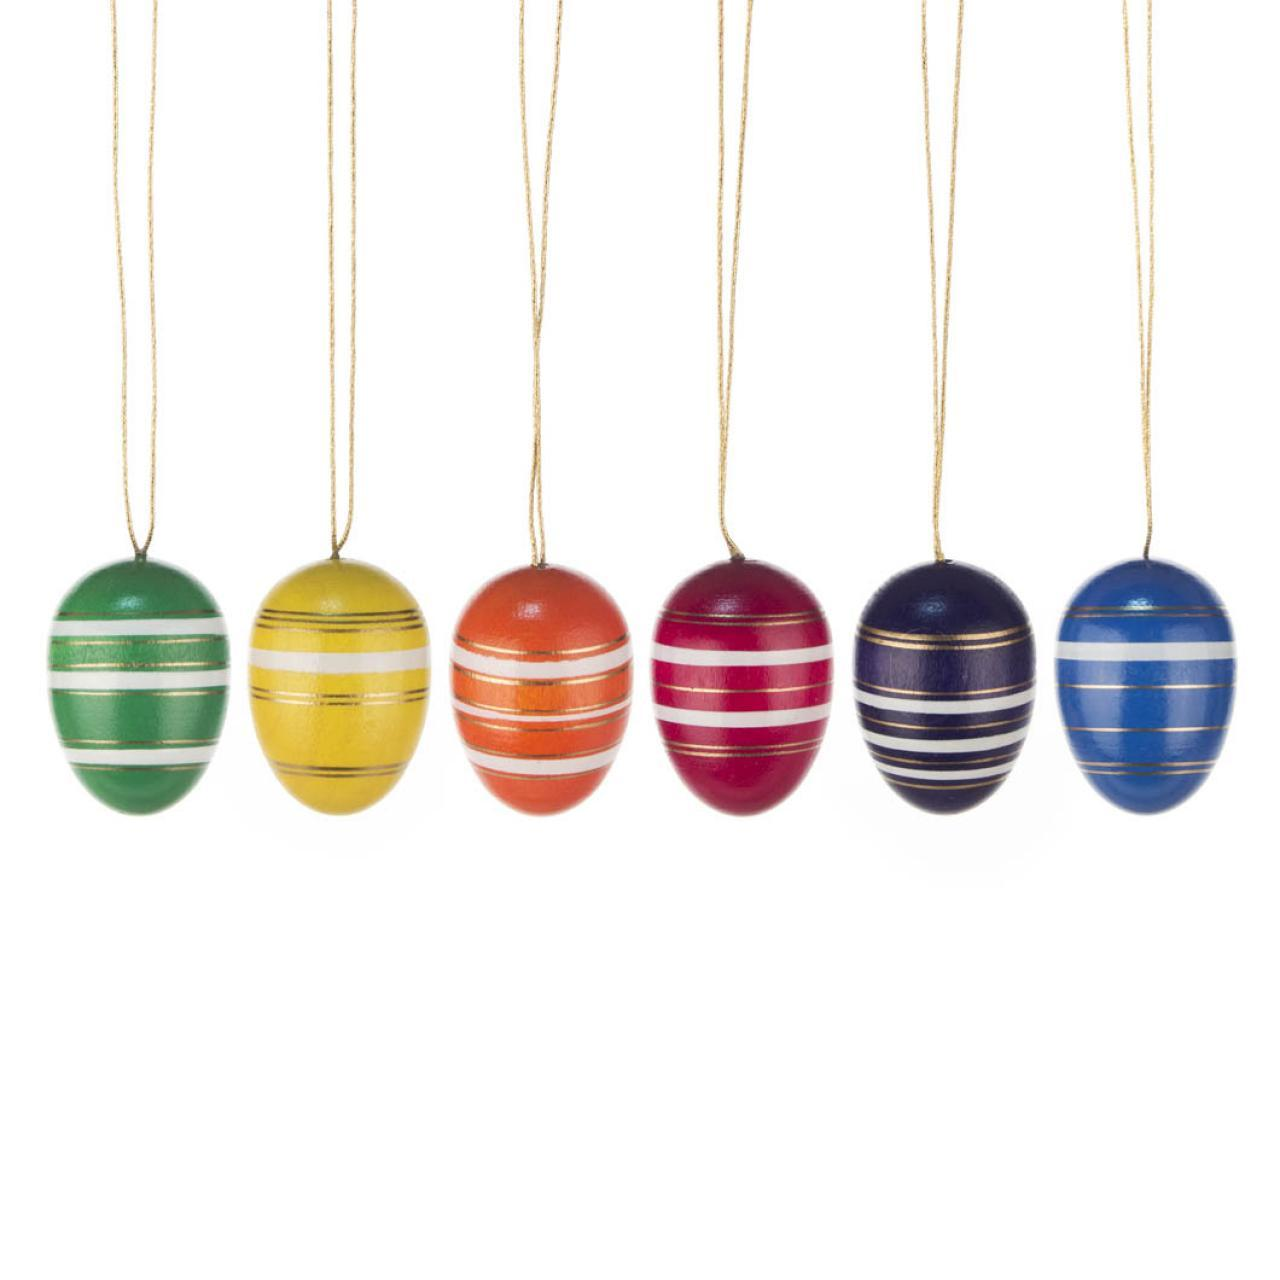 Easter Tree Decoration - Fine-banded Eggs (Set of 6)